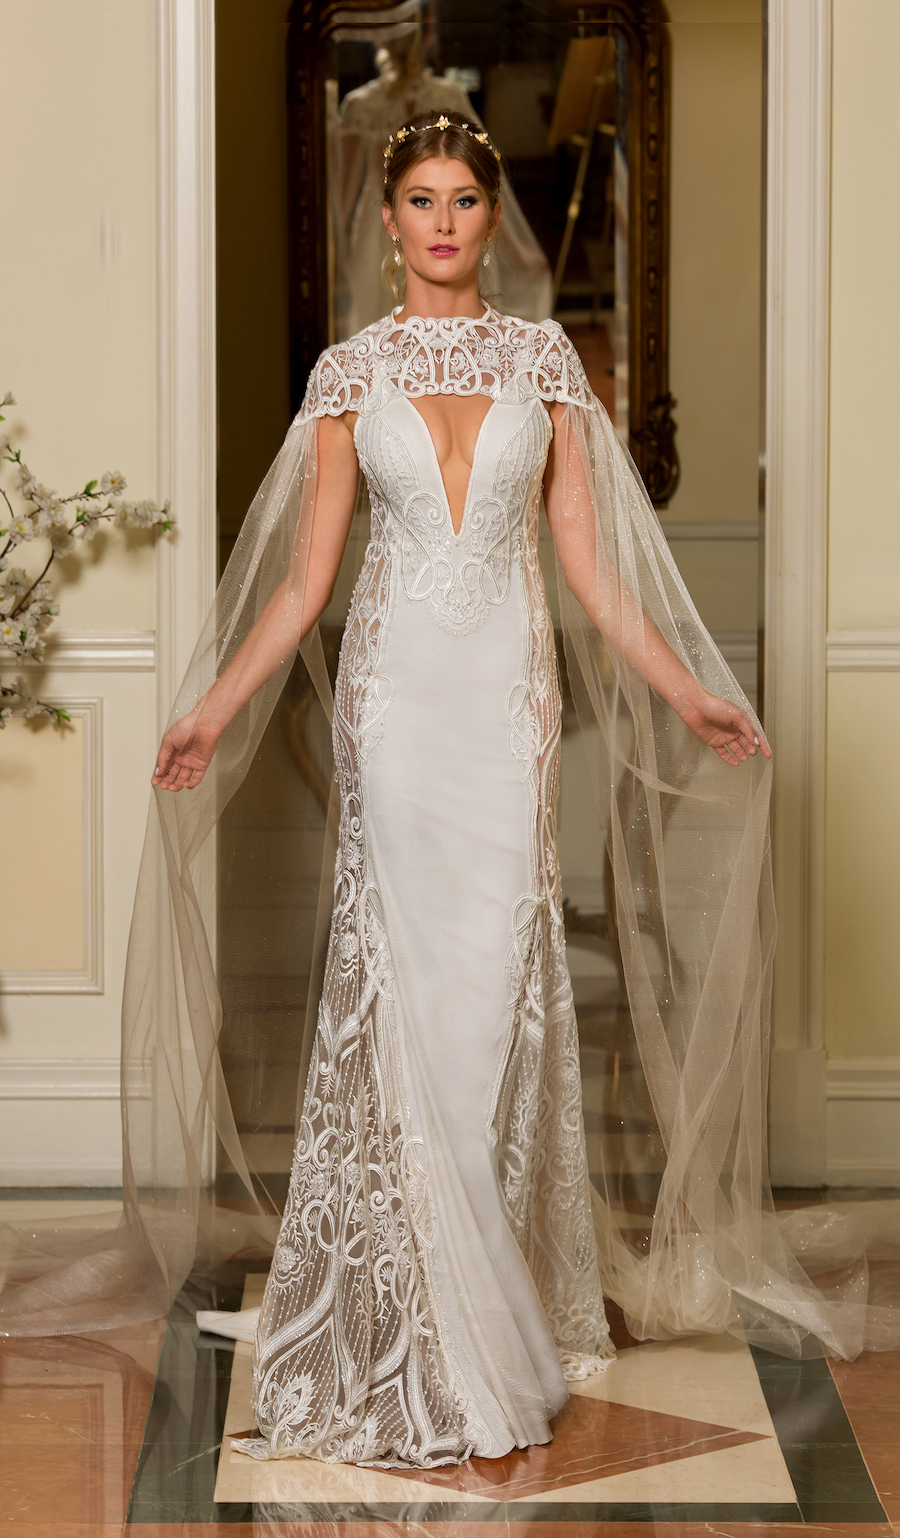 Naama and Anat Haute Couture, Wedding Dress Trends, 2018 Wedding Dress Trends, Naama and Anat Bridal, Couture Wedding Dress, Luxury Wedding Gown, Khalisi Gown, cape